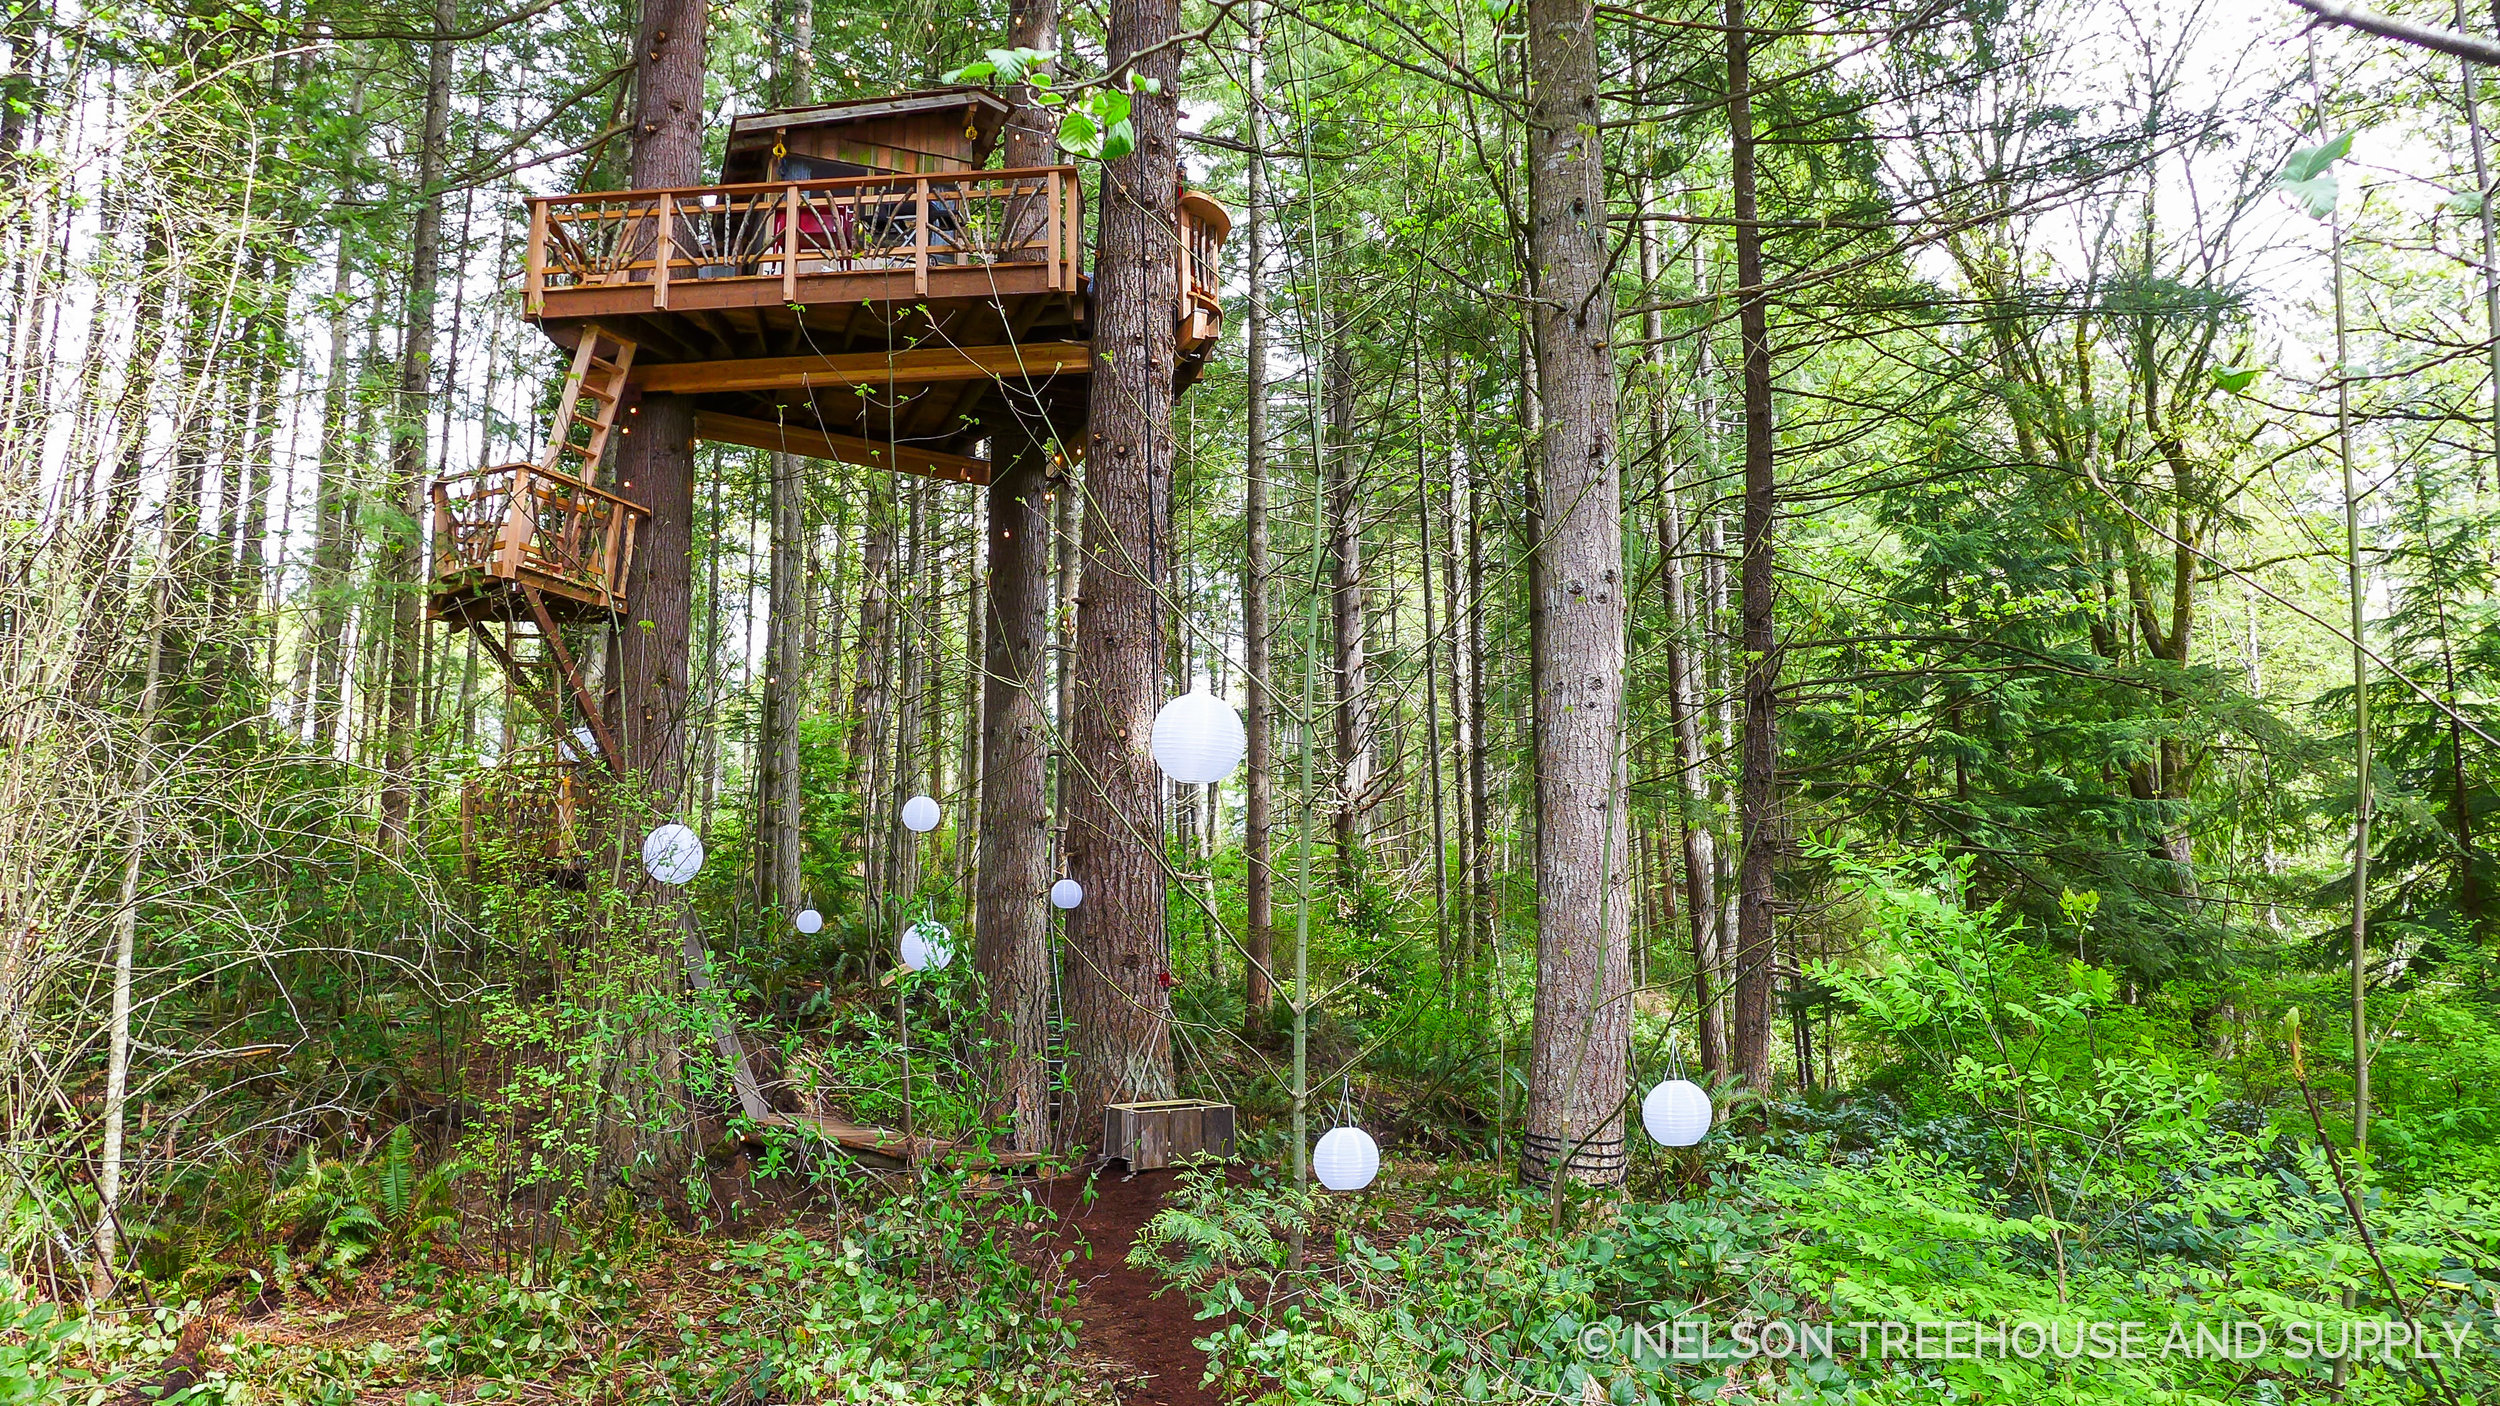 Emily and Patrick Treehouse